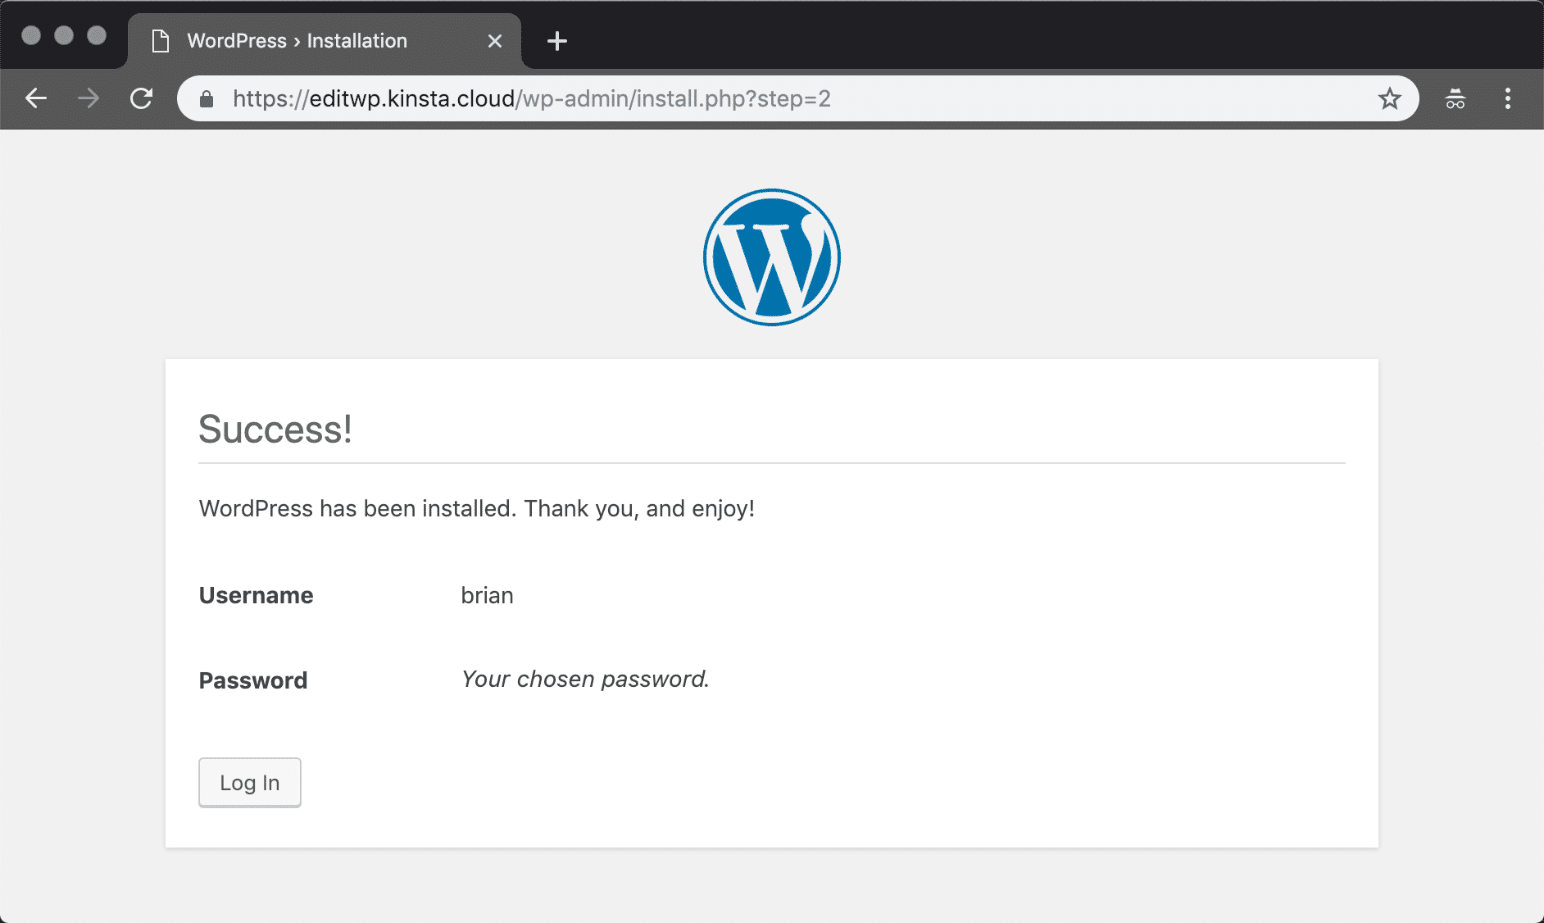 Installare manualmente WordPress